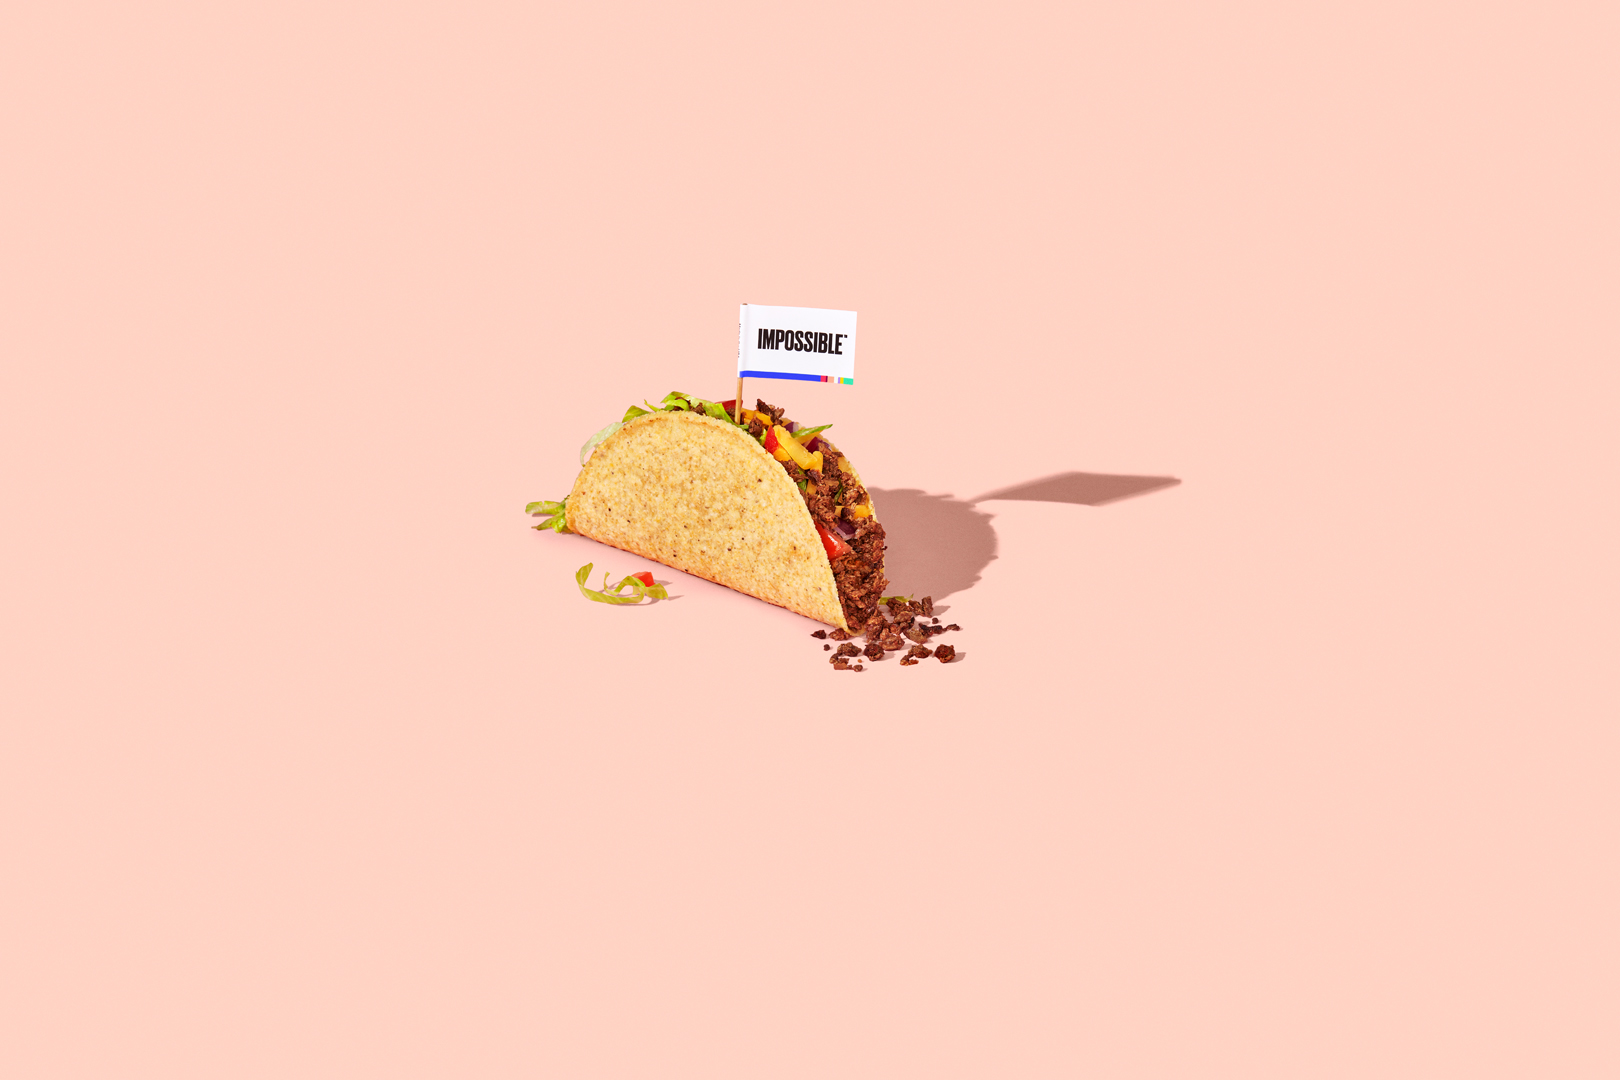 IMPOSSIBLE FOODS TACOS for Cinco de Mayo